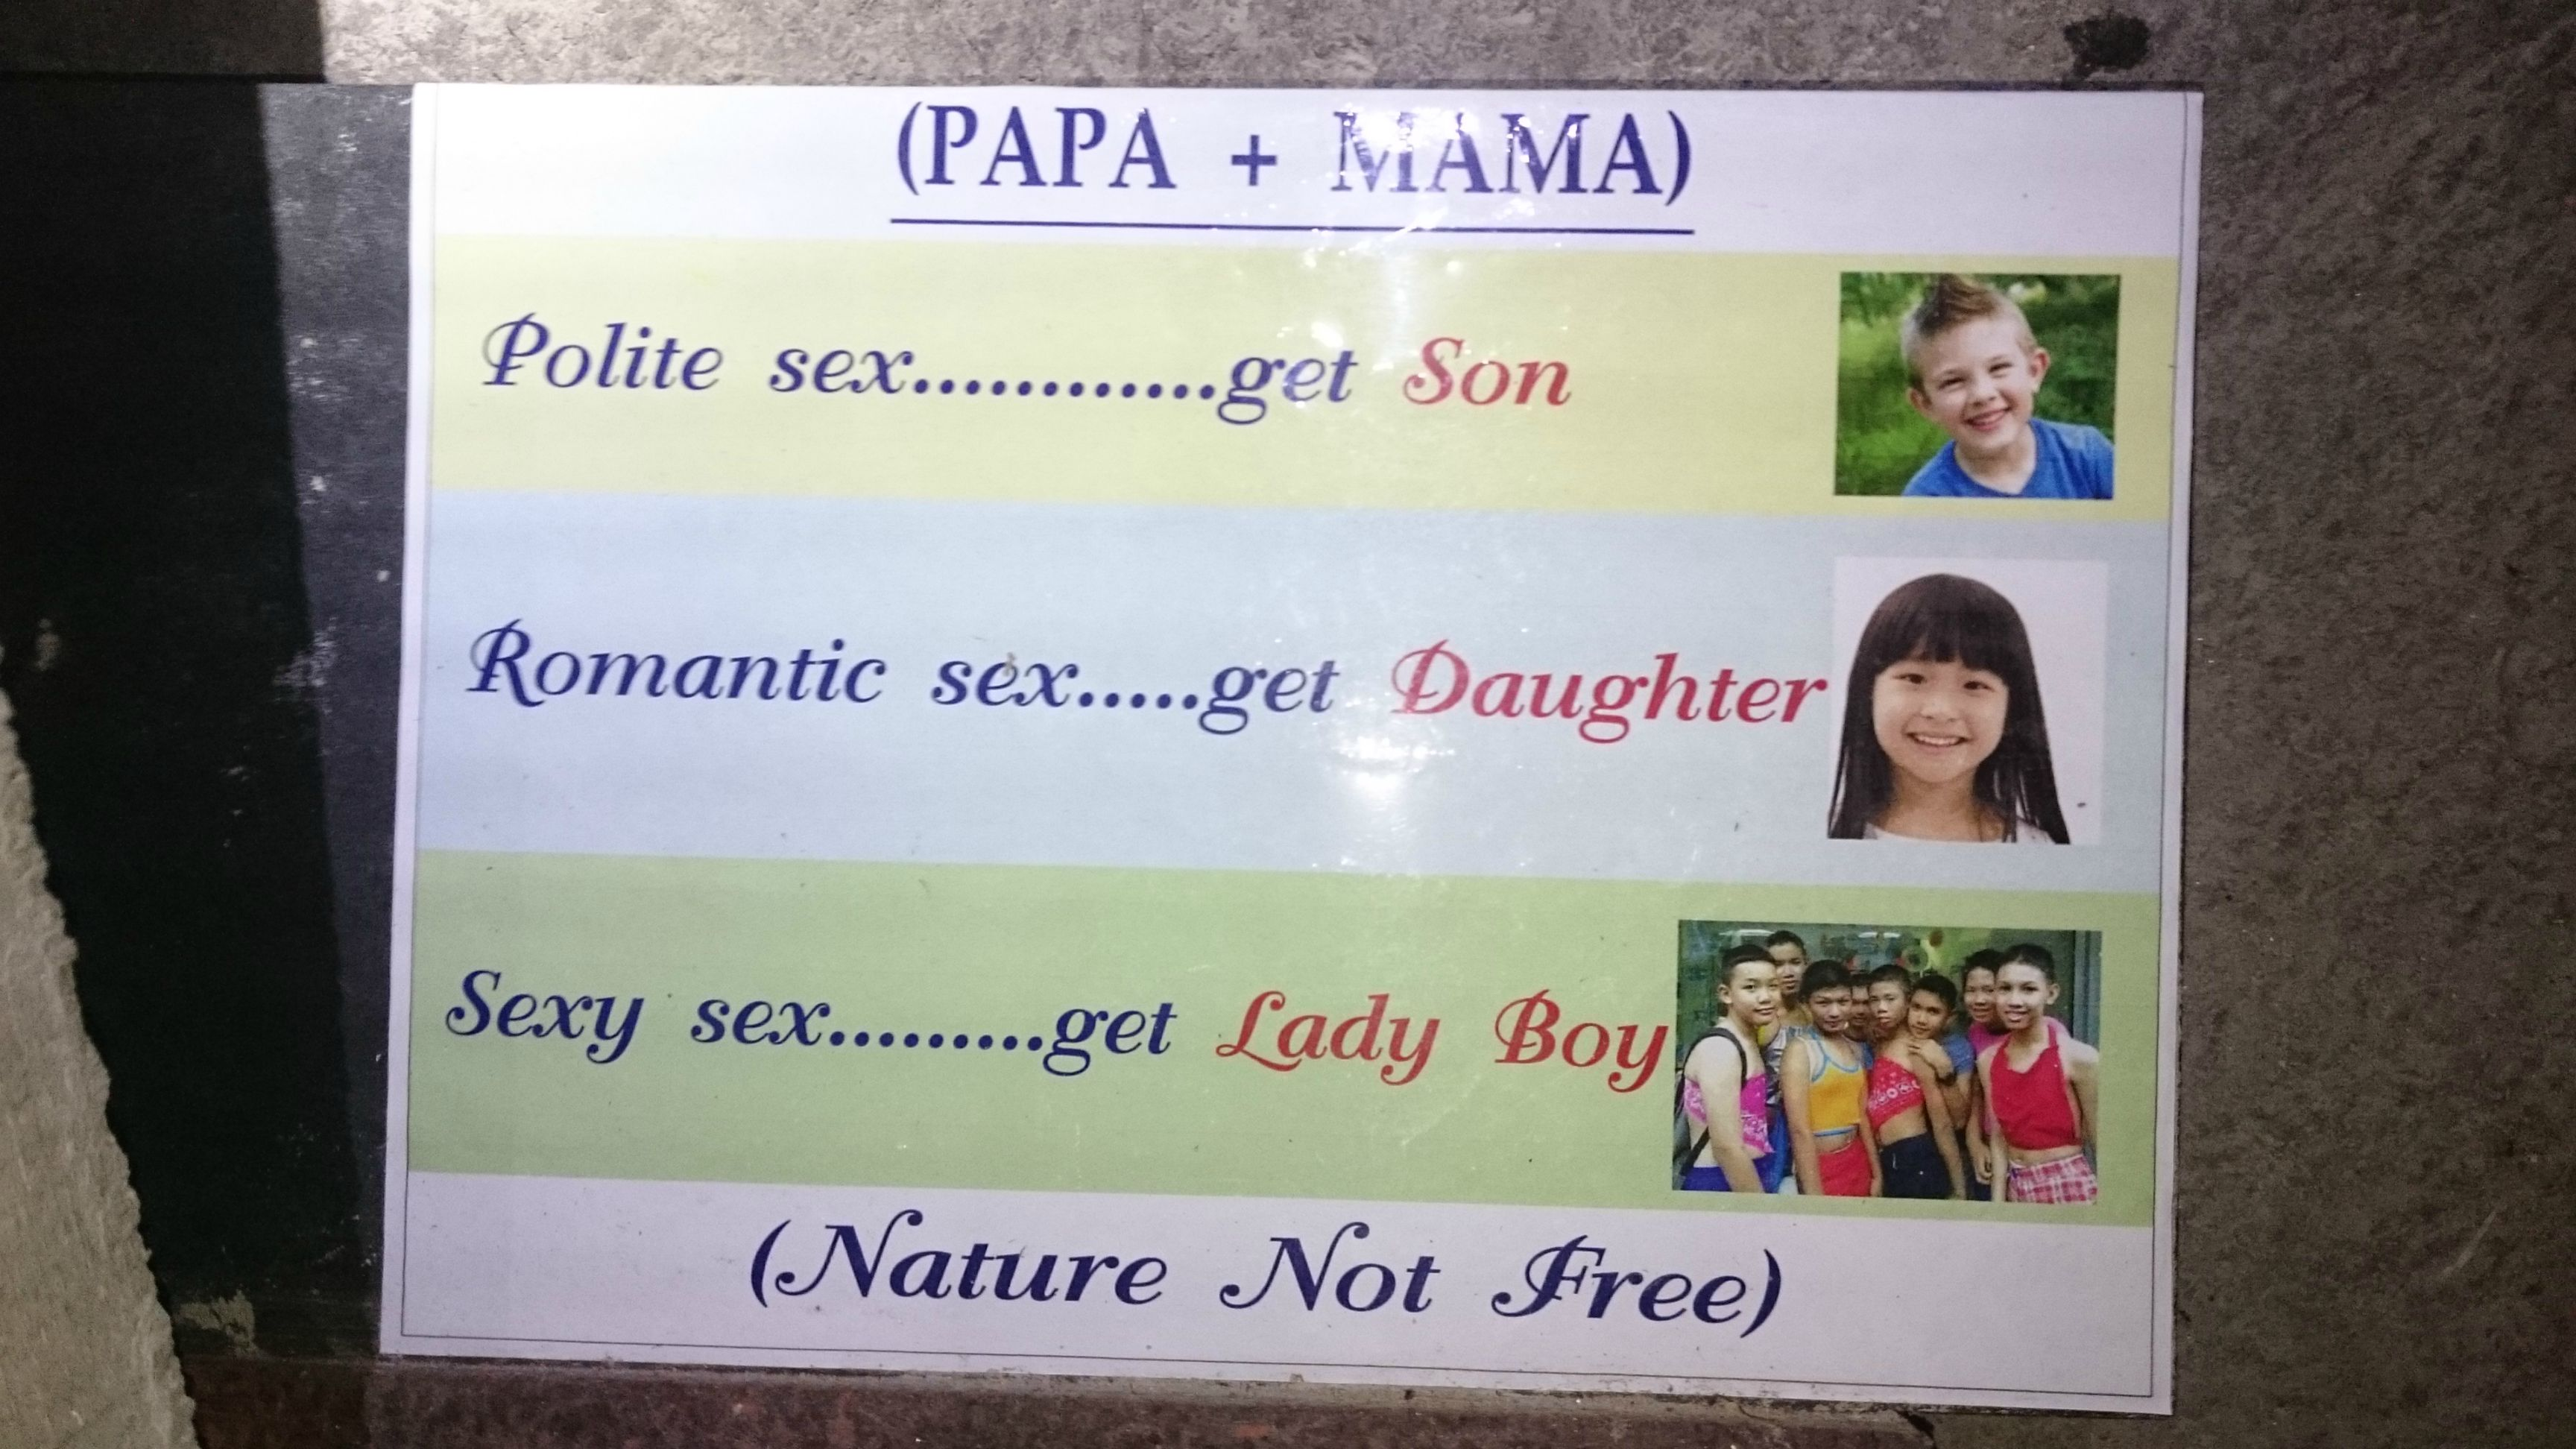 3 - Family planning in Thailand.